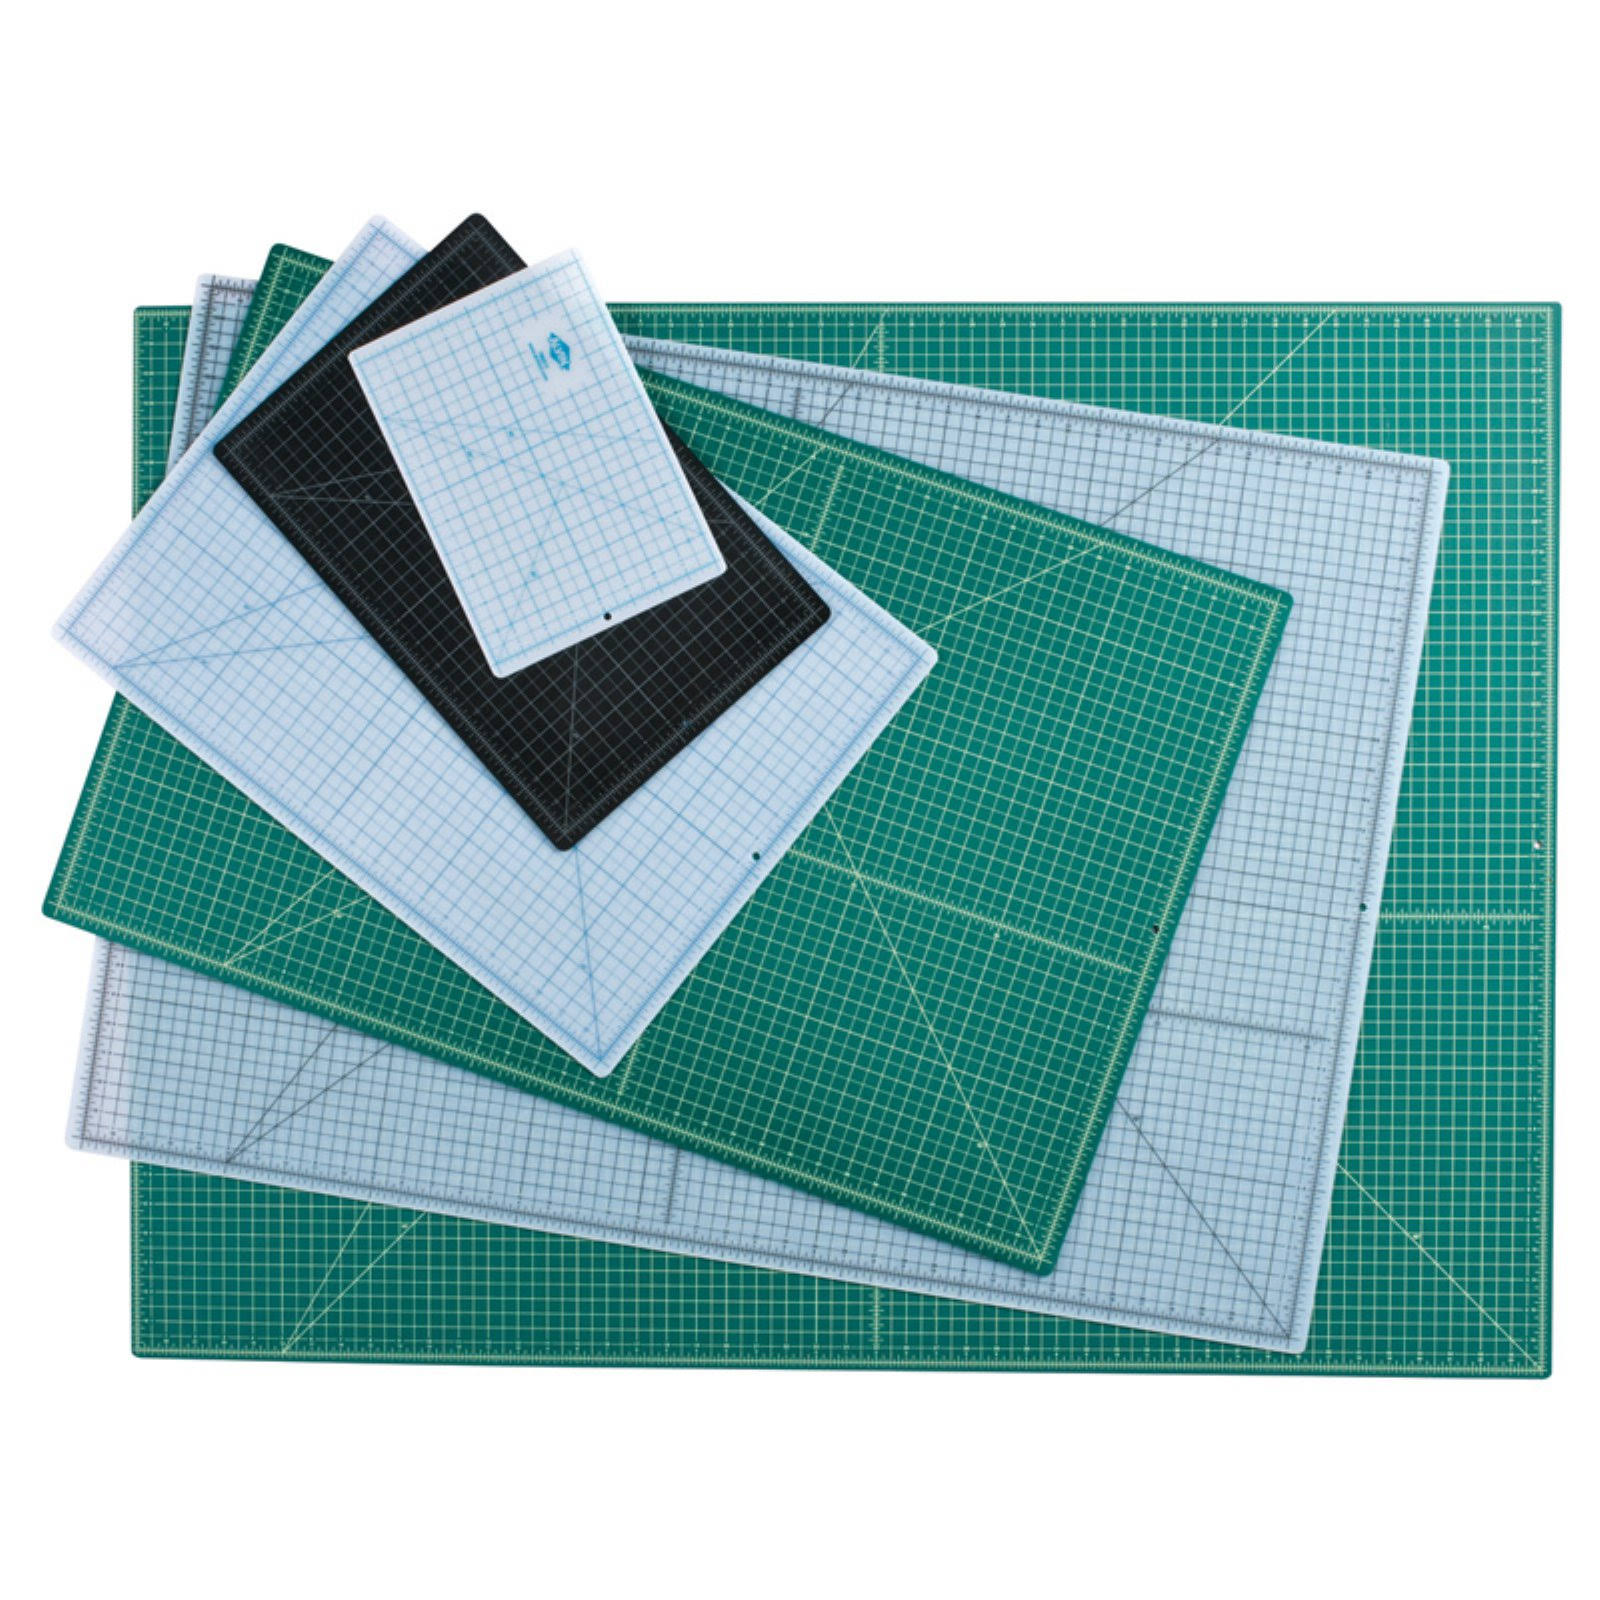 "Alvin Professional Cutting Mats - Green and Black, 36"" x 24"""